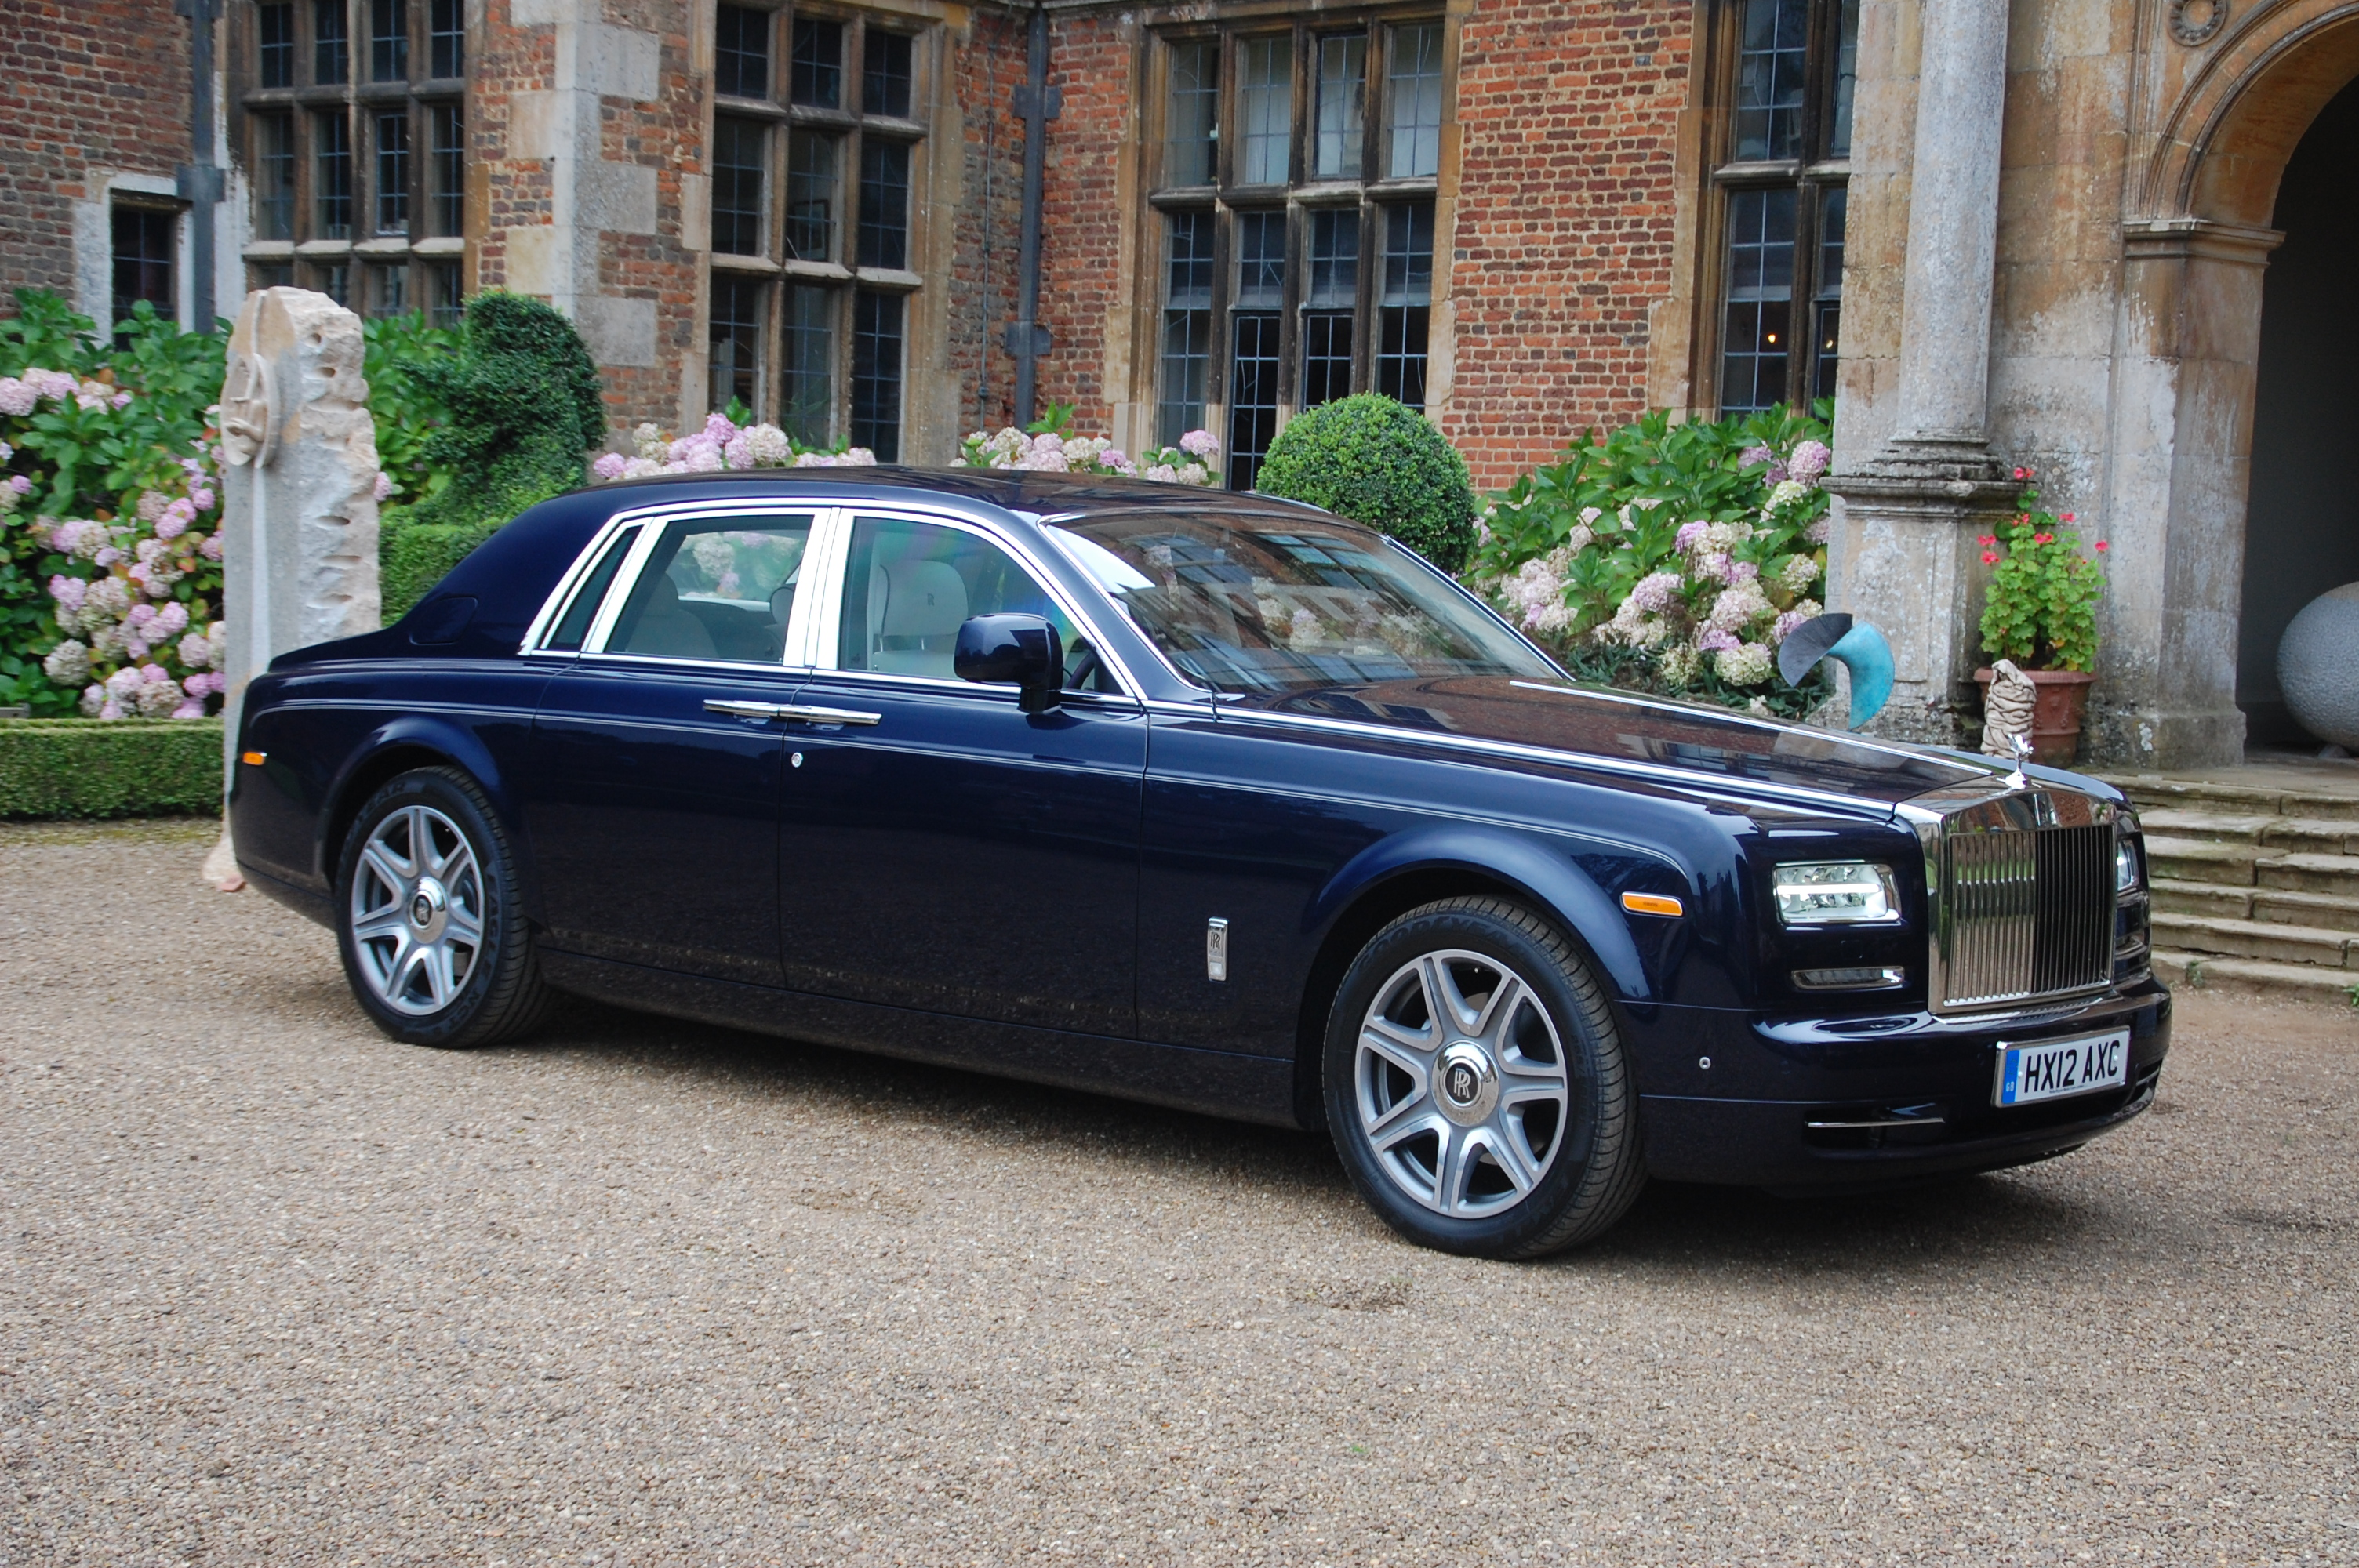 rolls royce phantom series ii road test petroleum vitae. Black Bedroom Furniture Sets. Home Design Ideas